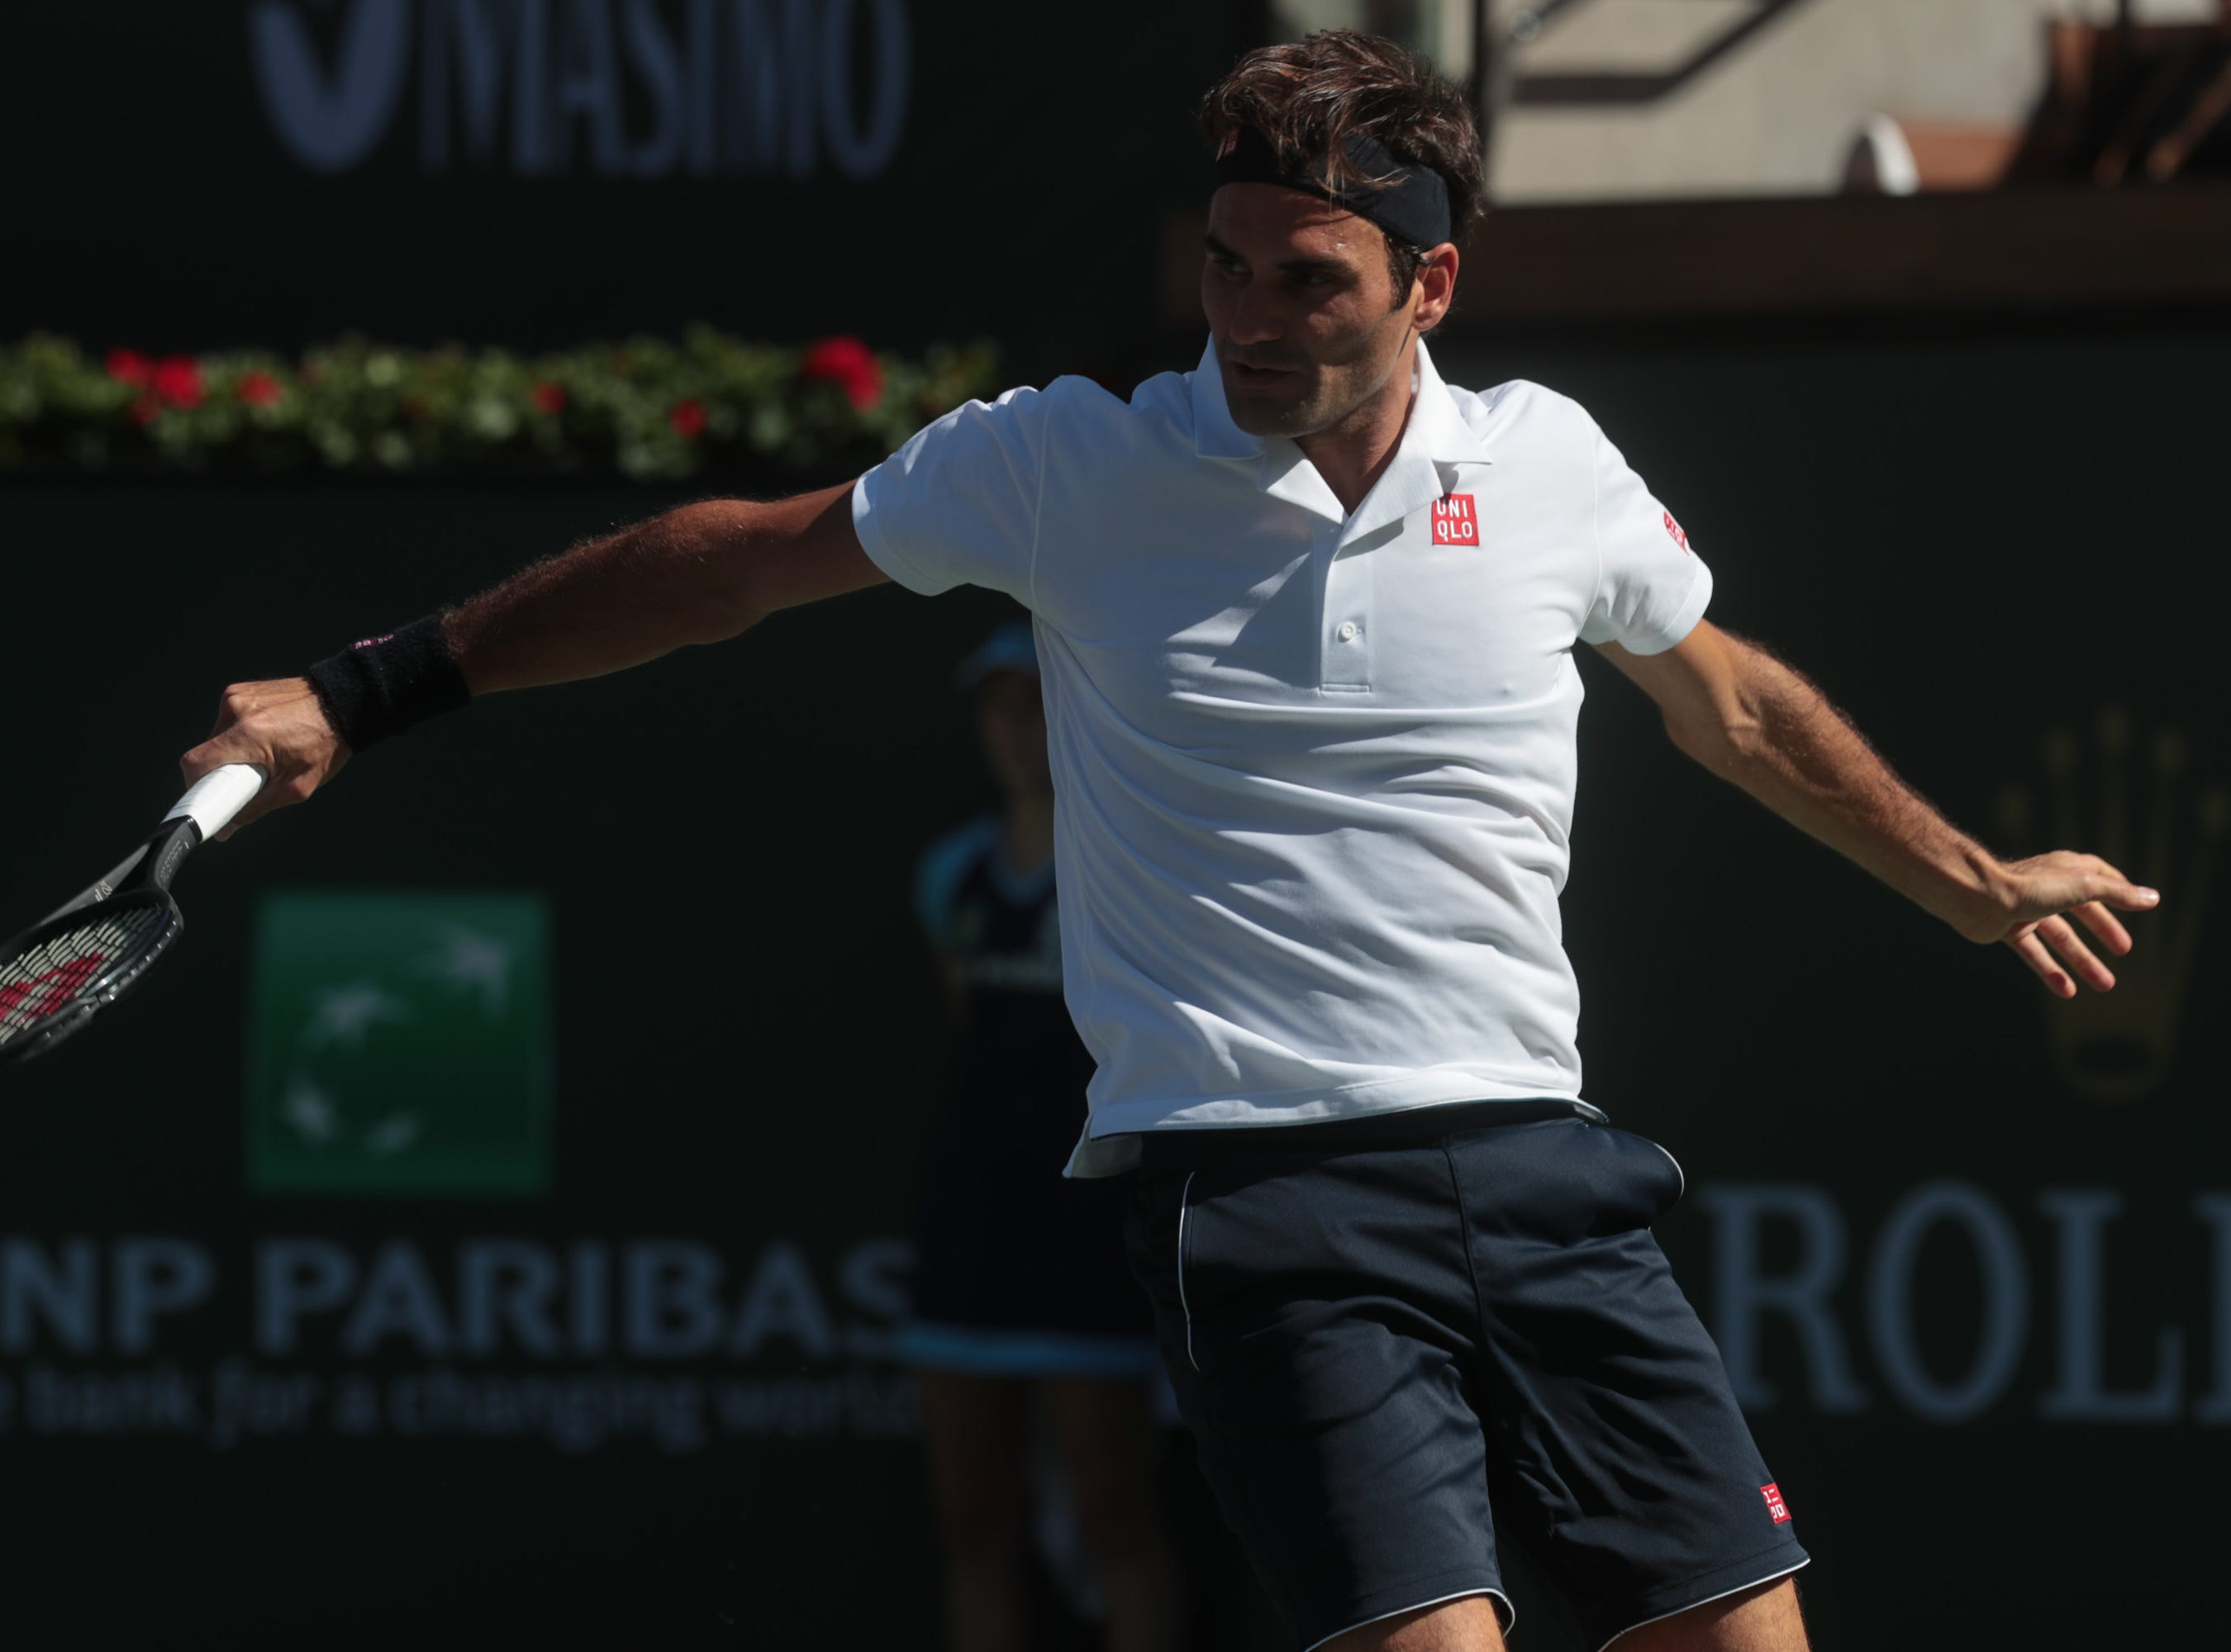 Roger Federer hits a backhand to Kyle Edmund at the BNP Paribas Open in Indian Wells, Calif., March 13, 2019.